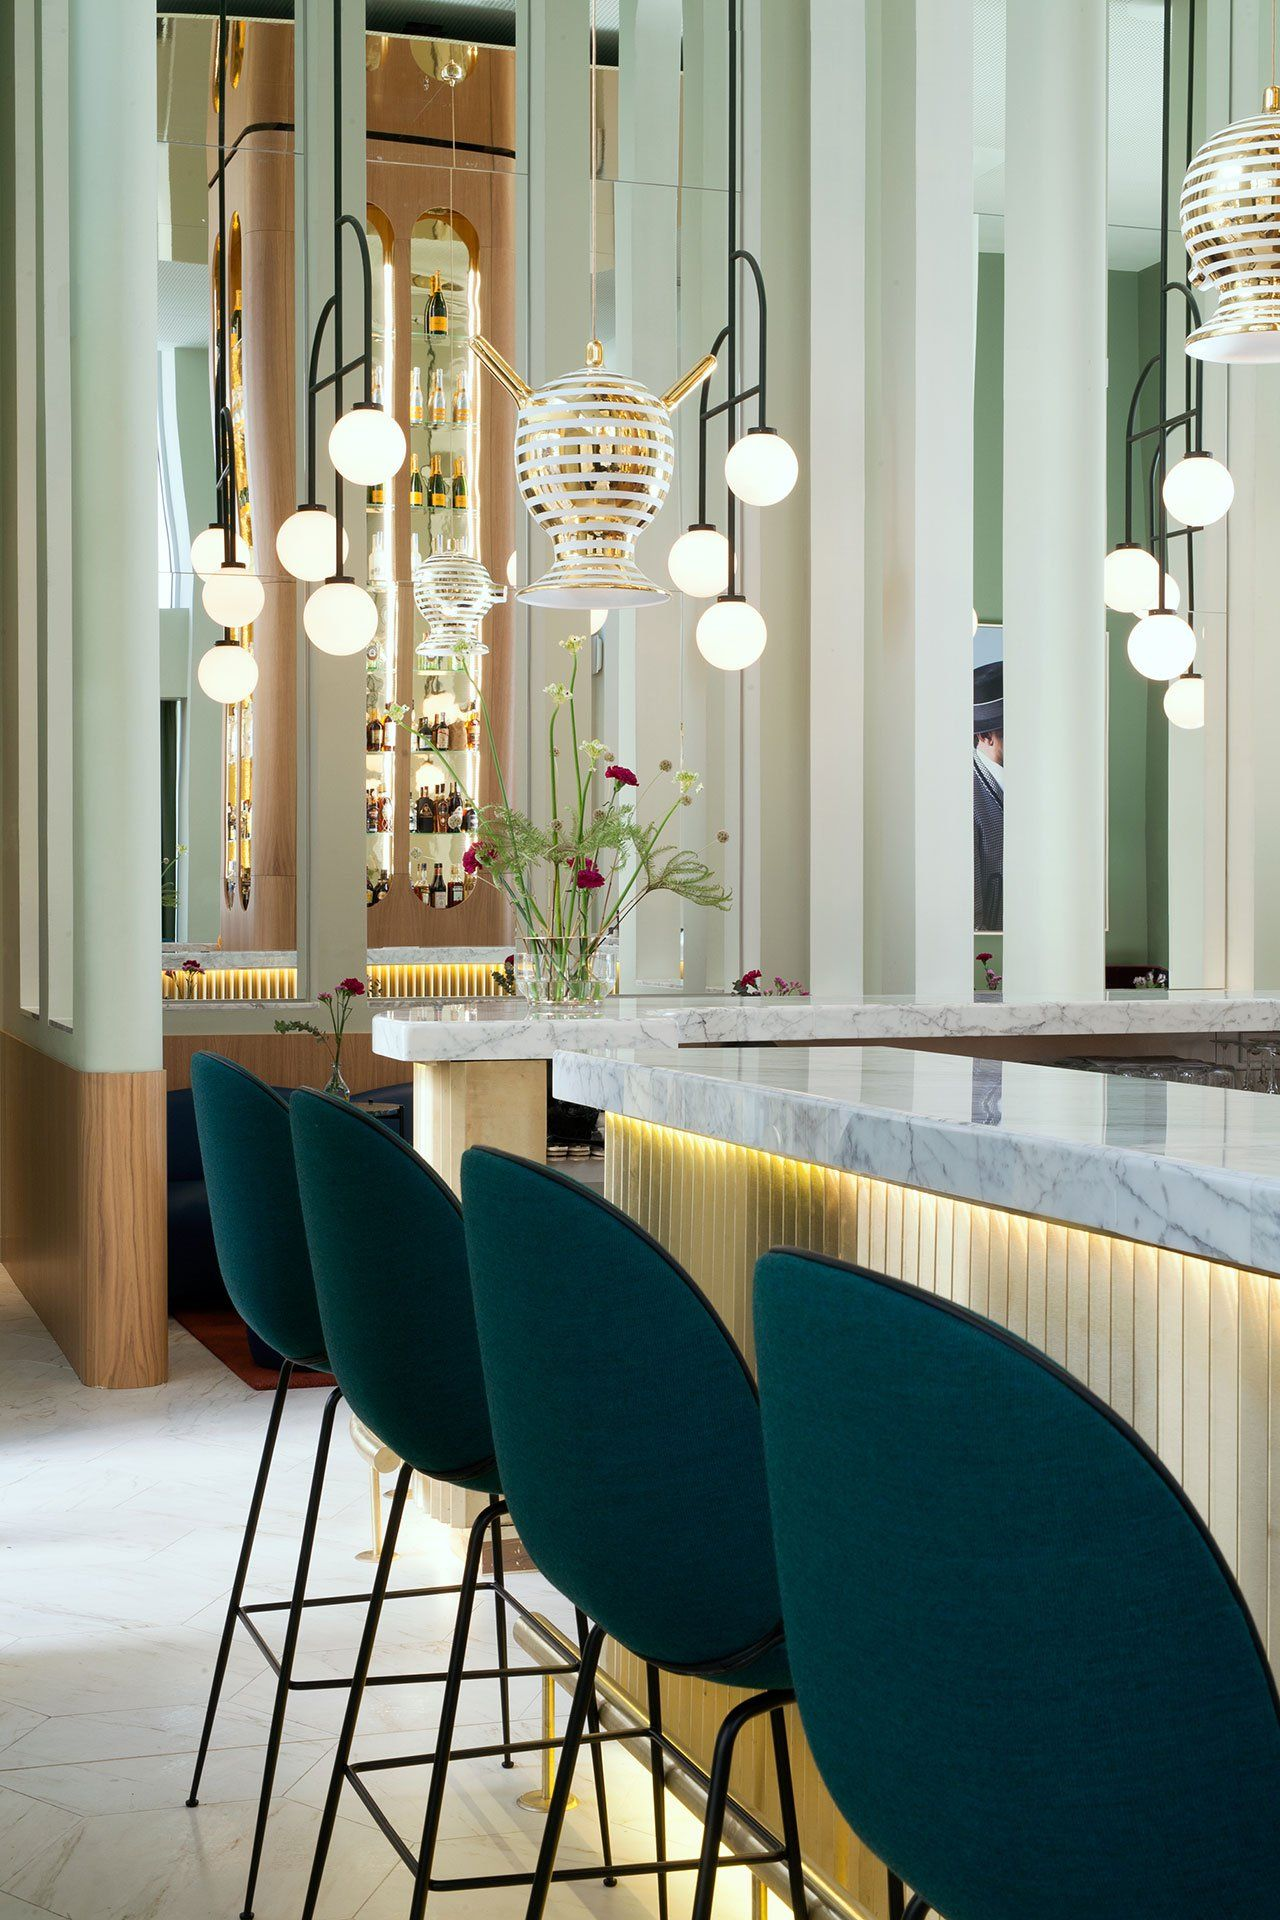 Madrid hotel s glam and whimsical upgrade by designer Jaime Hayon